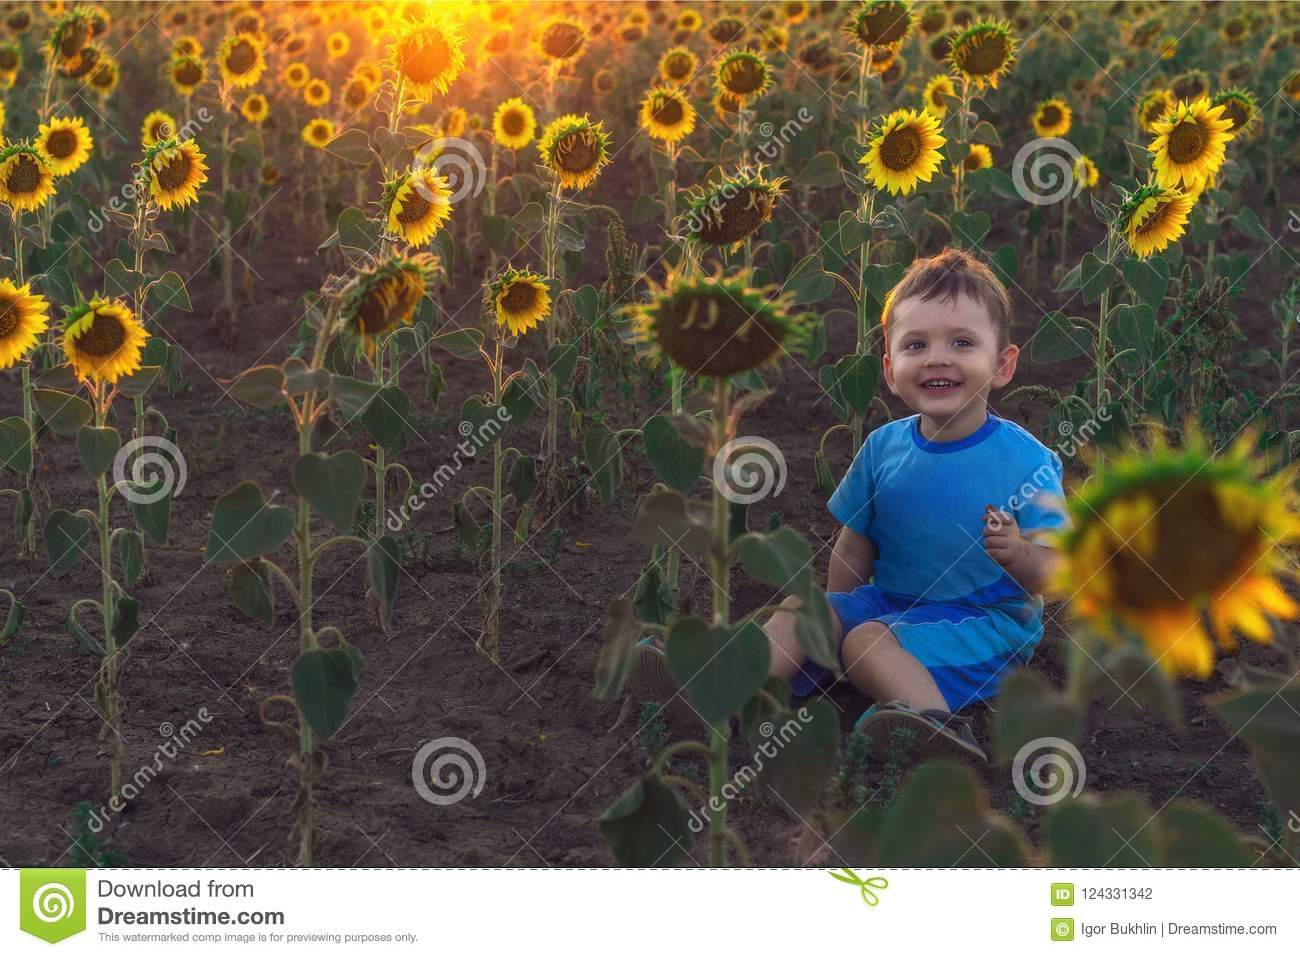 Cute little boy sitting on the ground in a field with sunflowers at sunset. The concept of a happy childhood. Outdoor recreation.